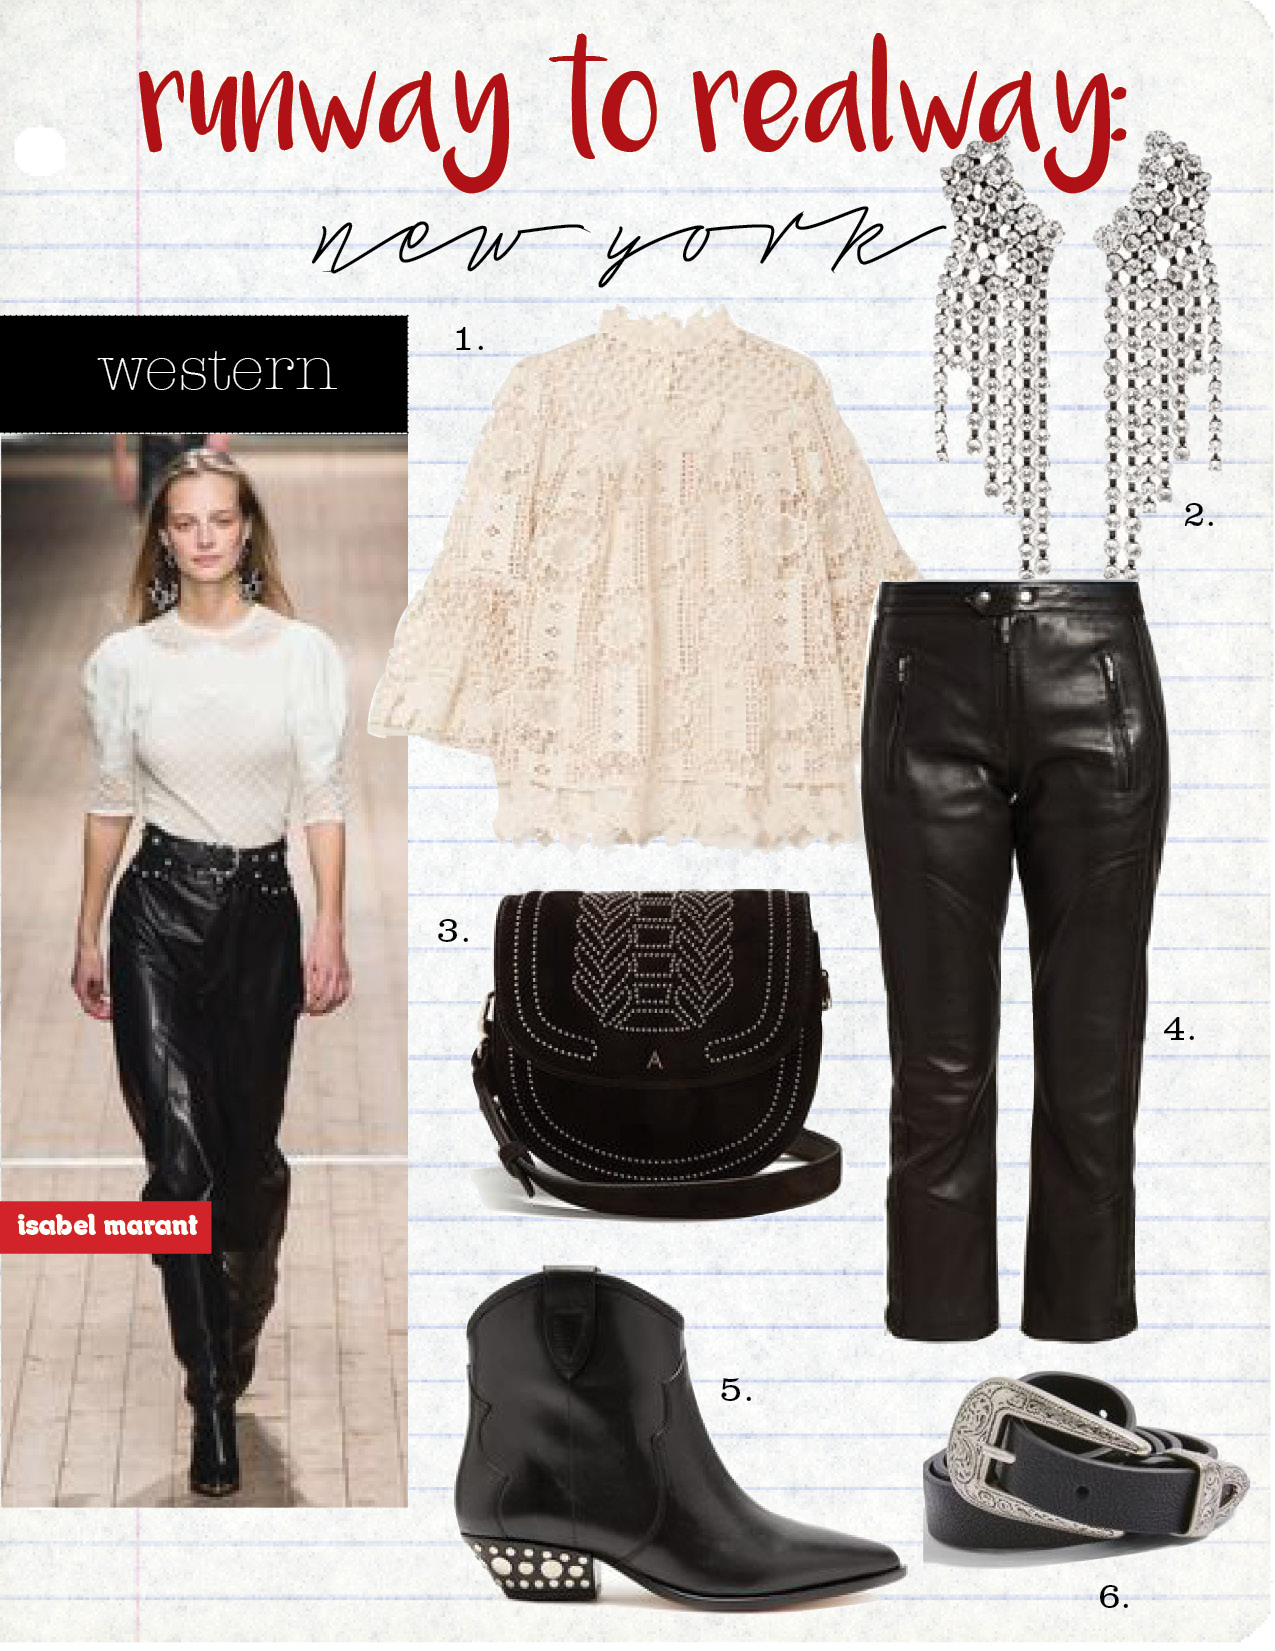 1. anna sui guipure lace top, $490,  net-a-porter.com  2. isabel marant silver-tone crystal earrings, $520,  net-a-porter.com  3. altuzarra ghianda mini stud-embellished suede bag, $1381,  matchesfashion.com  4. isabel marant etoile aya cropped leather trousers, $1144,  matchesfashion.com  5. isabel marant dawyna ankle boots, $780,  isabelmarant.com  6. topshop slim double buckle belt, $38,  topshop.com